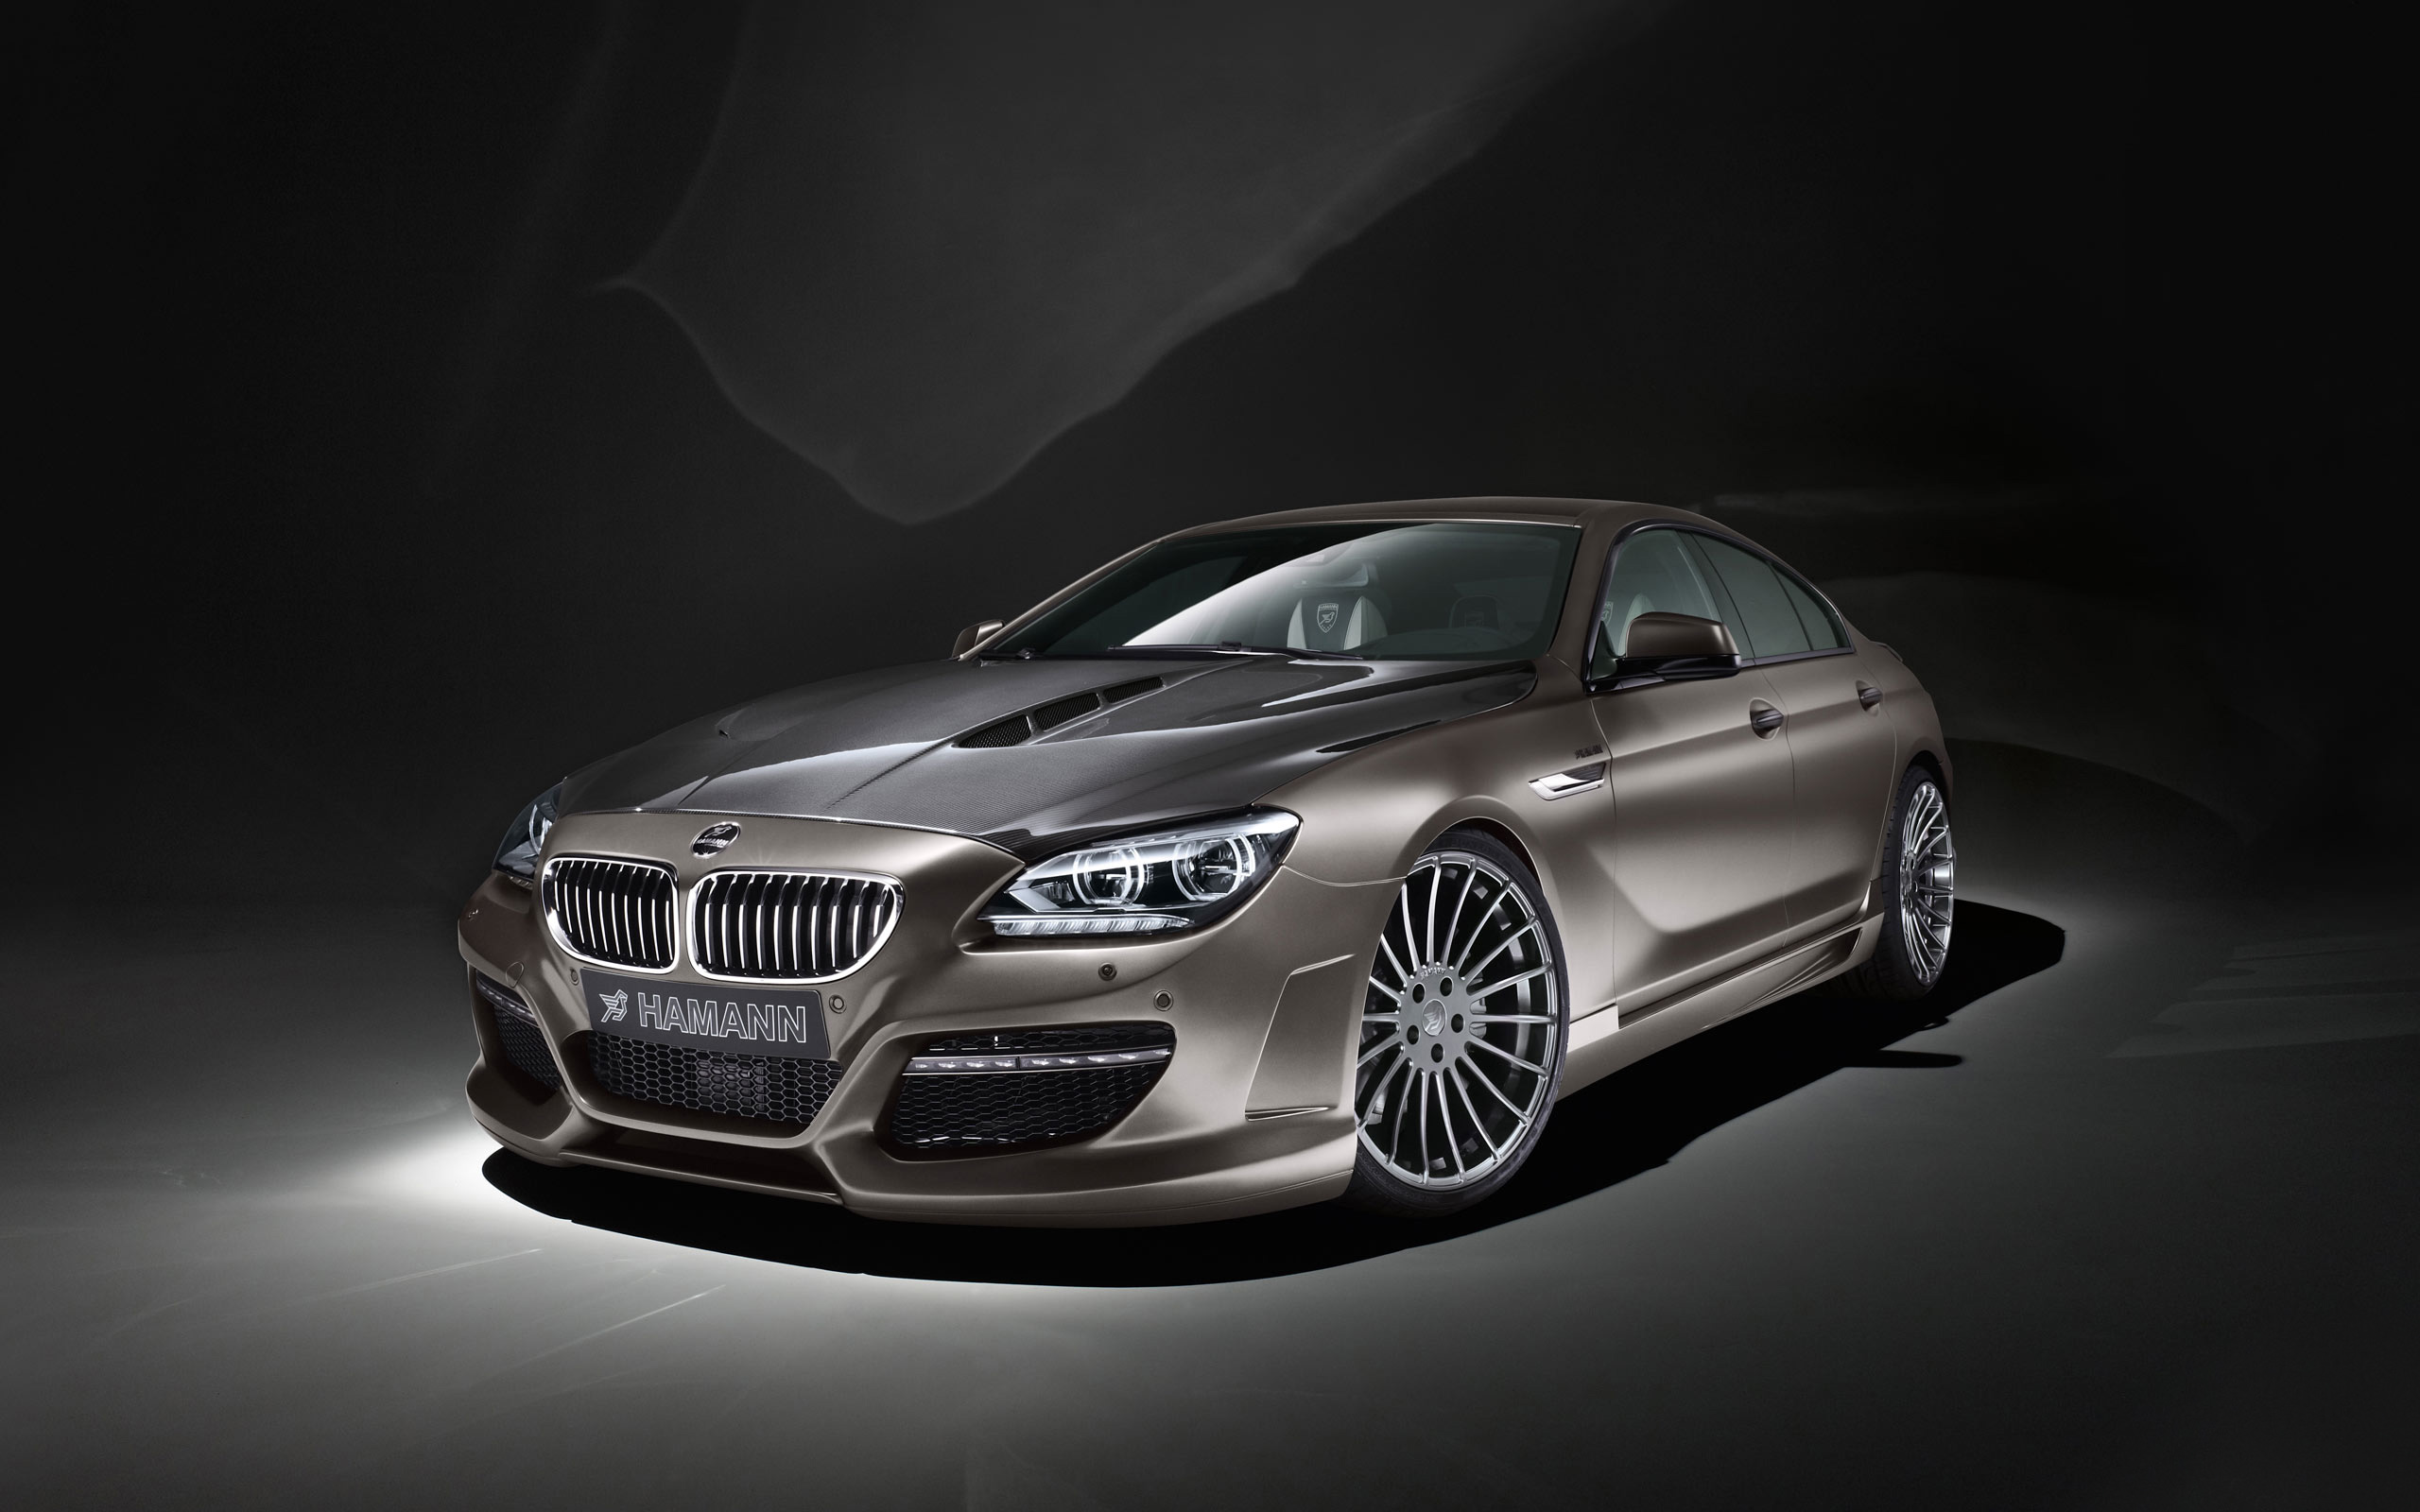 2012 bmw m6 gran coupe hamann wallpaper hd car wallpapers. Black Bedroom Furniture Sets. Home Design Ideas